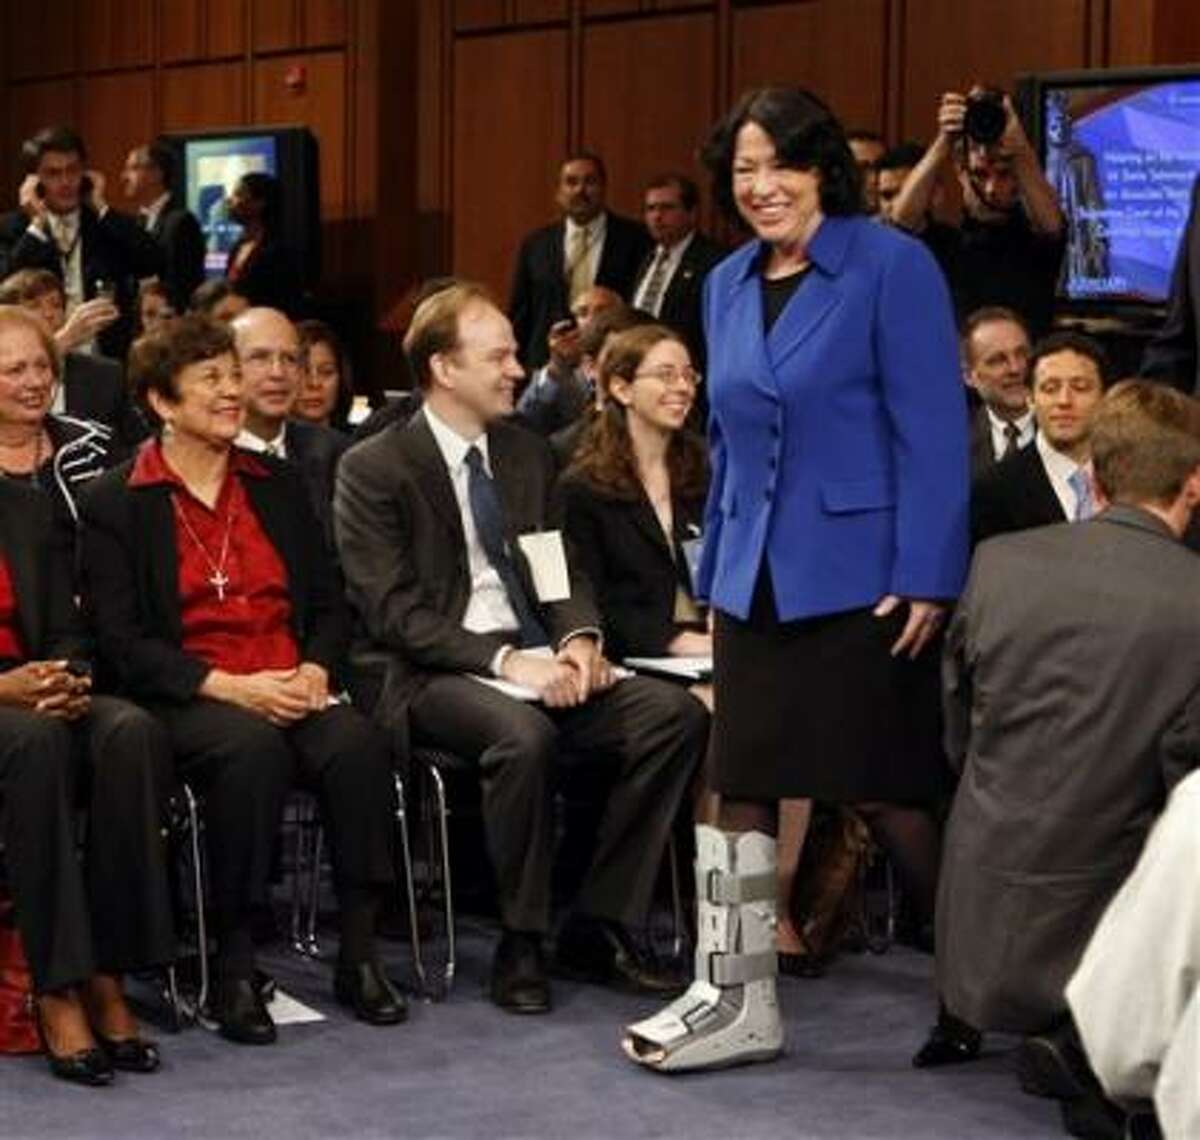 The nominee arrives for a day of testimony. She is still being treated for a broken ankle from five weeks ago. More coverage of Sotomayor here.